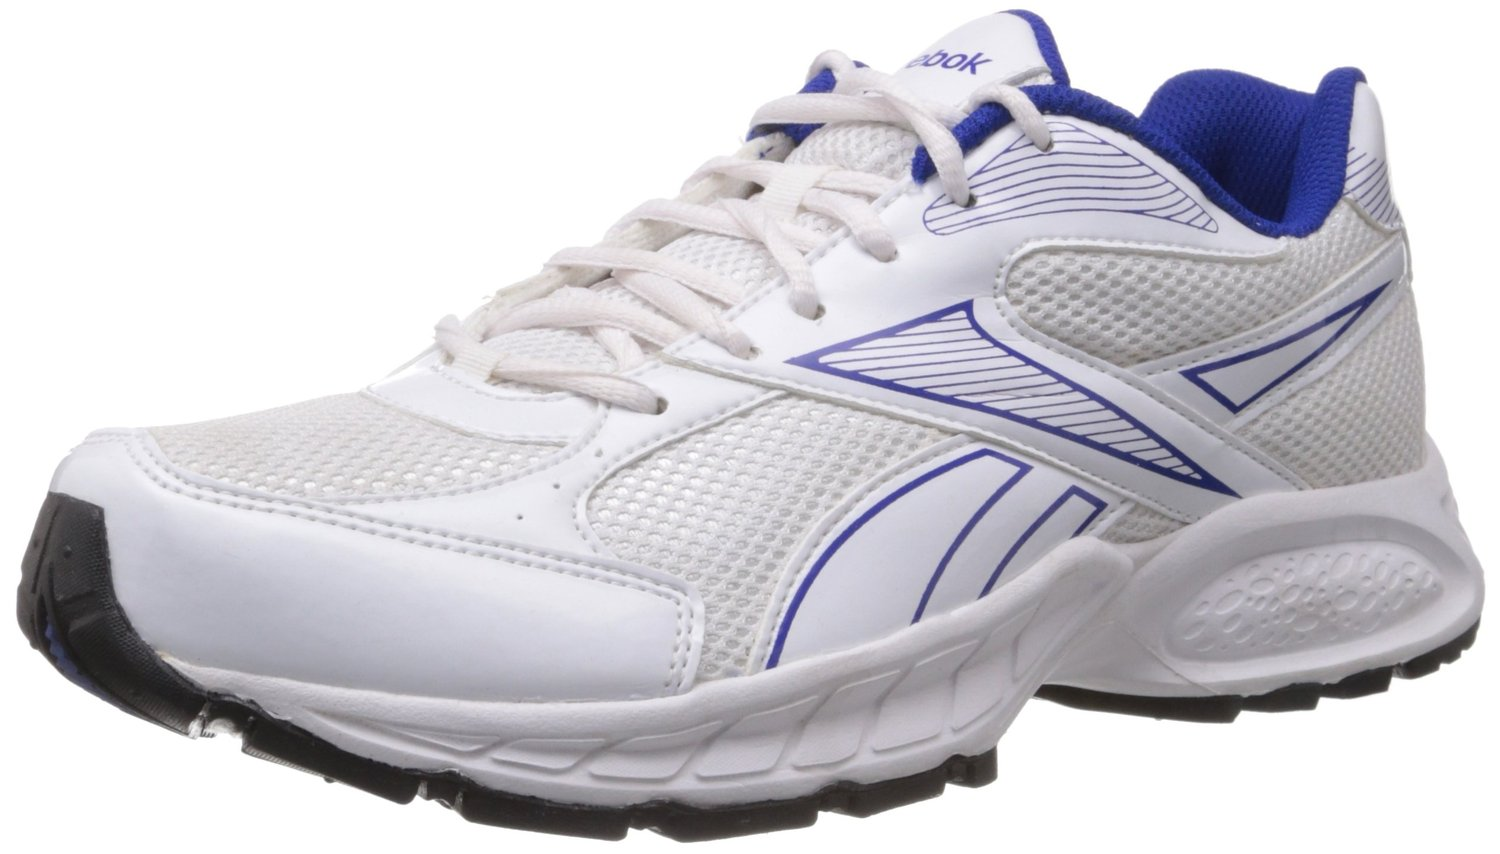 reebok shoes at flat 70 off at amazon biggest discount